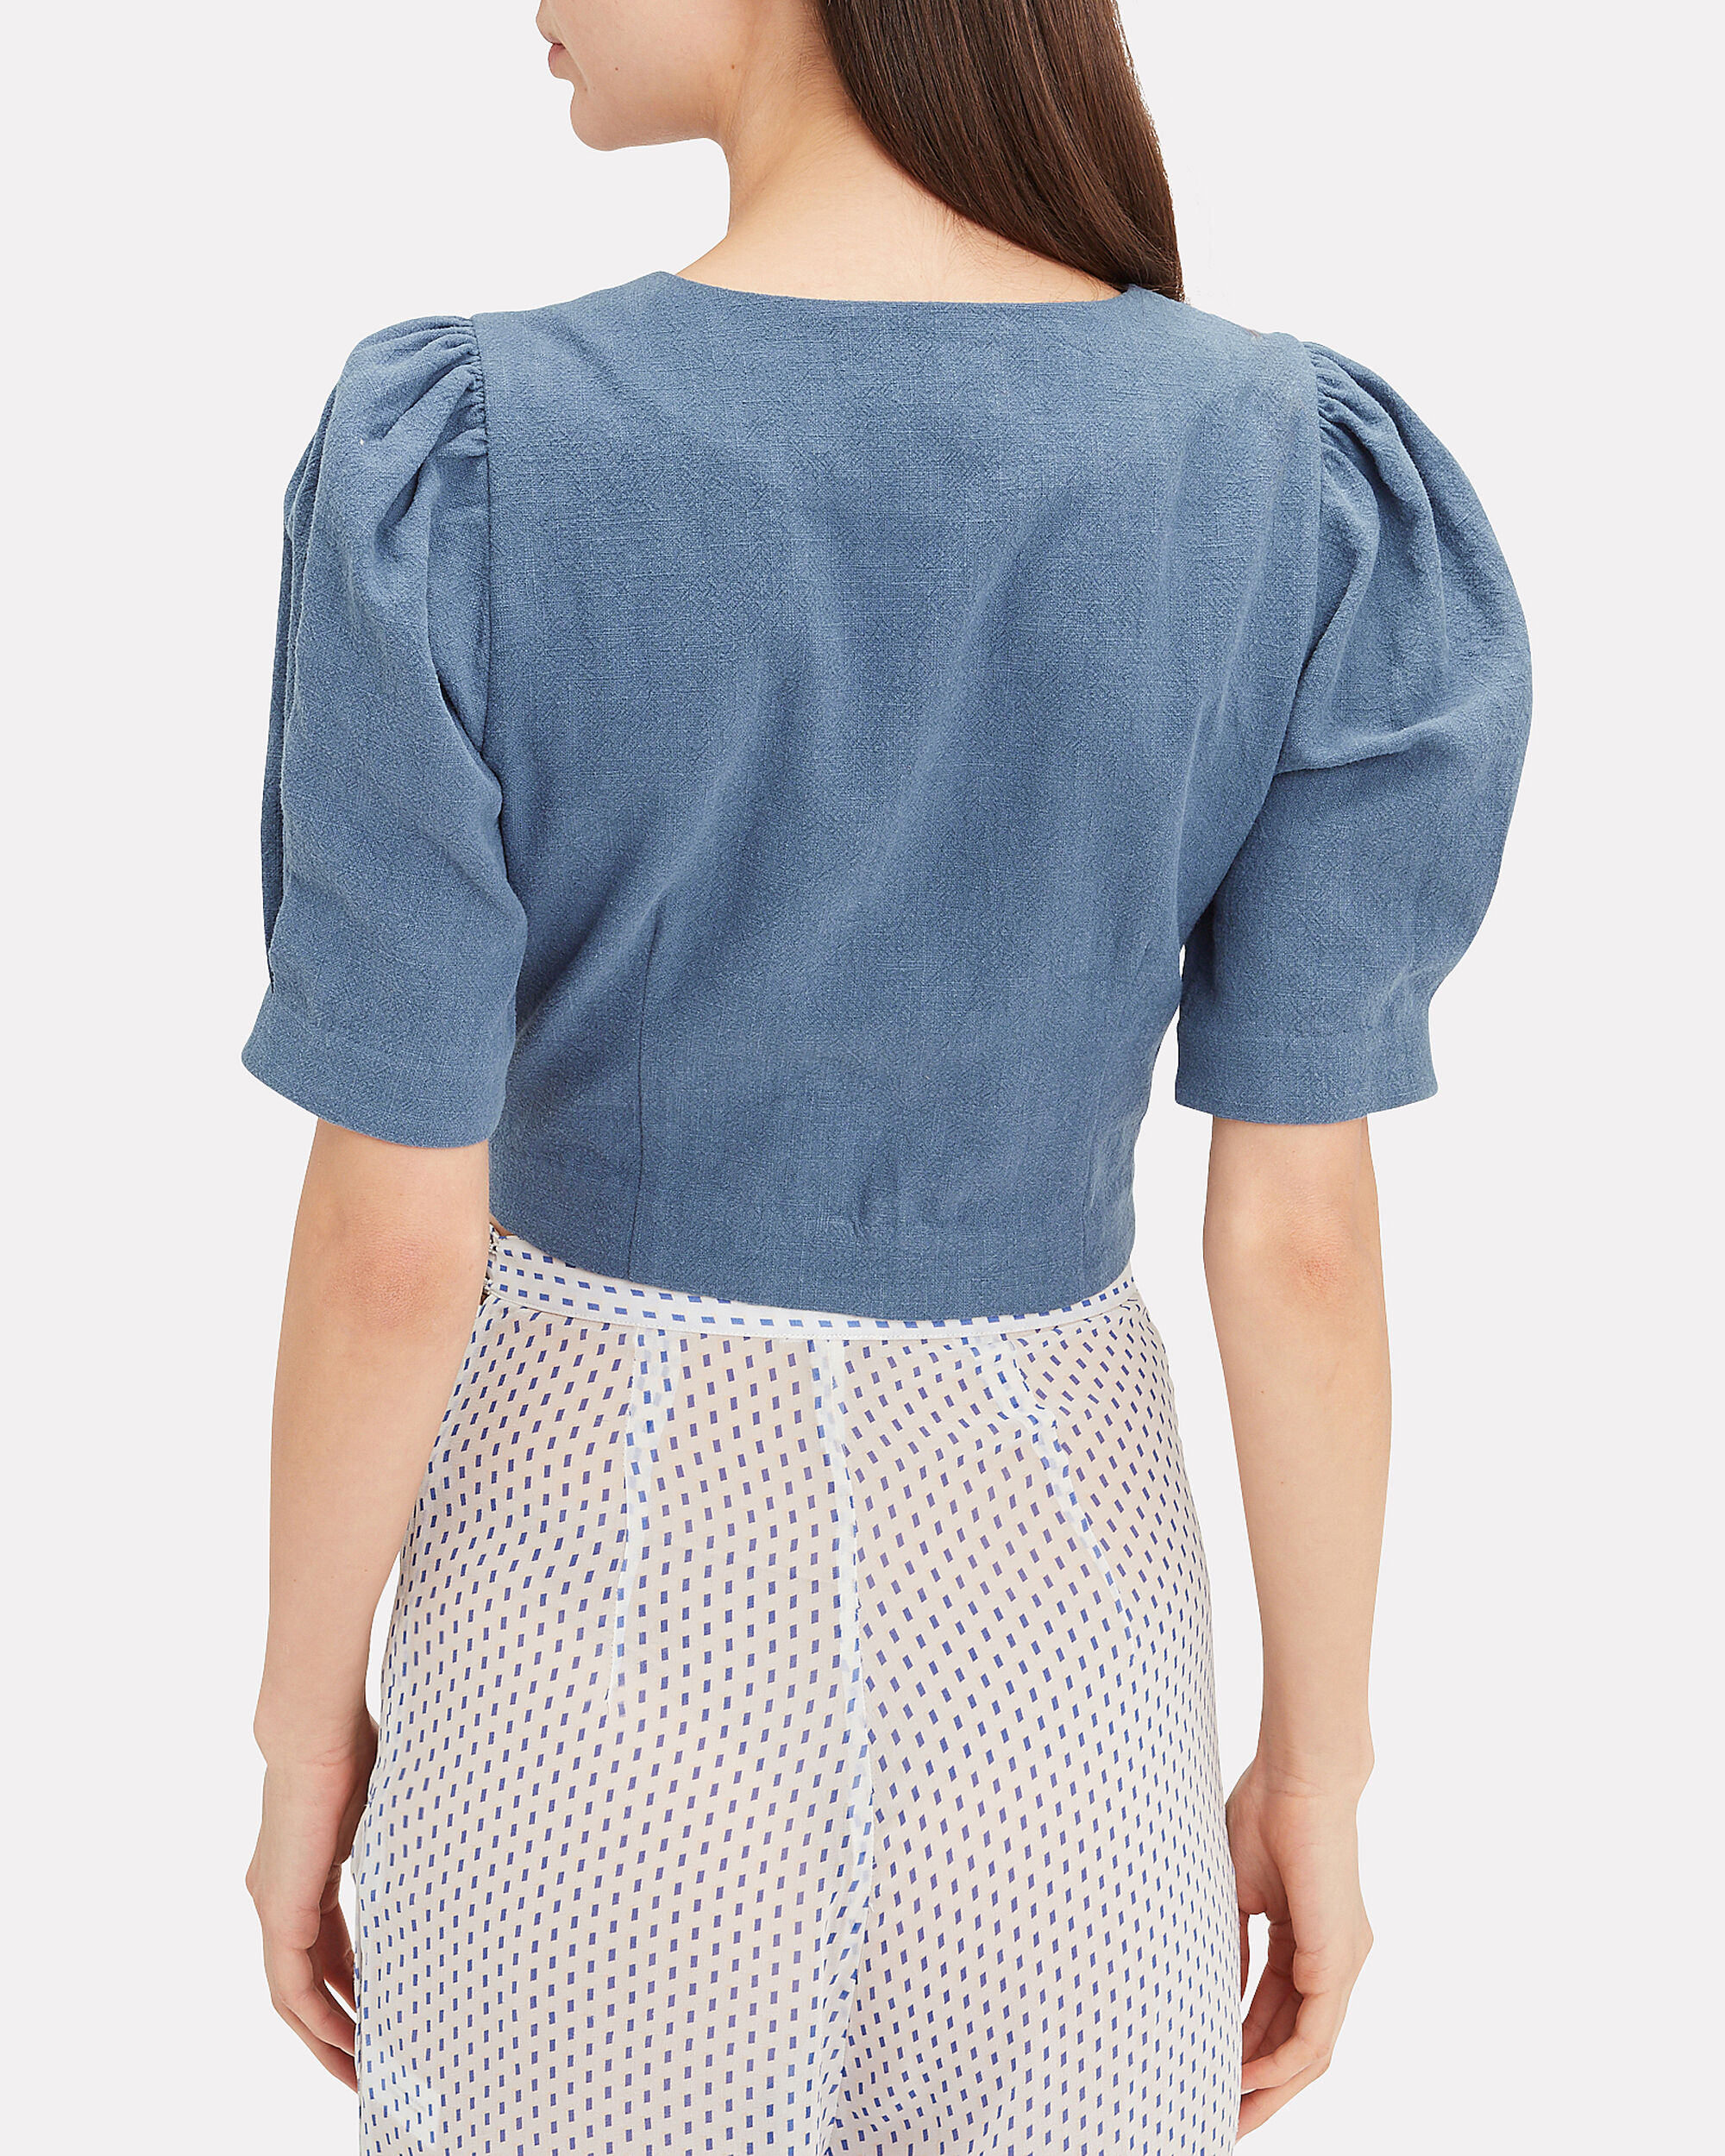 Tinley Denim Crop Top, MEDIUM BLUE DENIM, hi-res